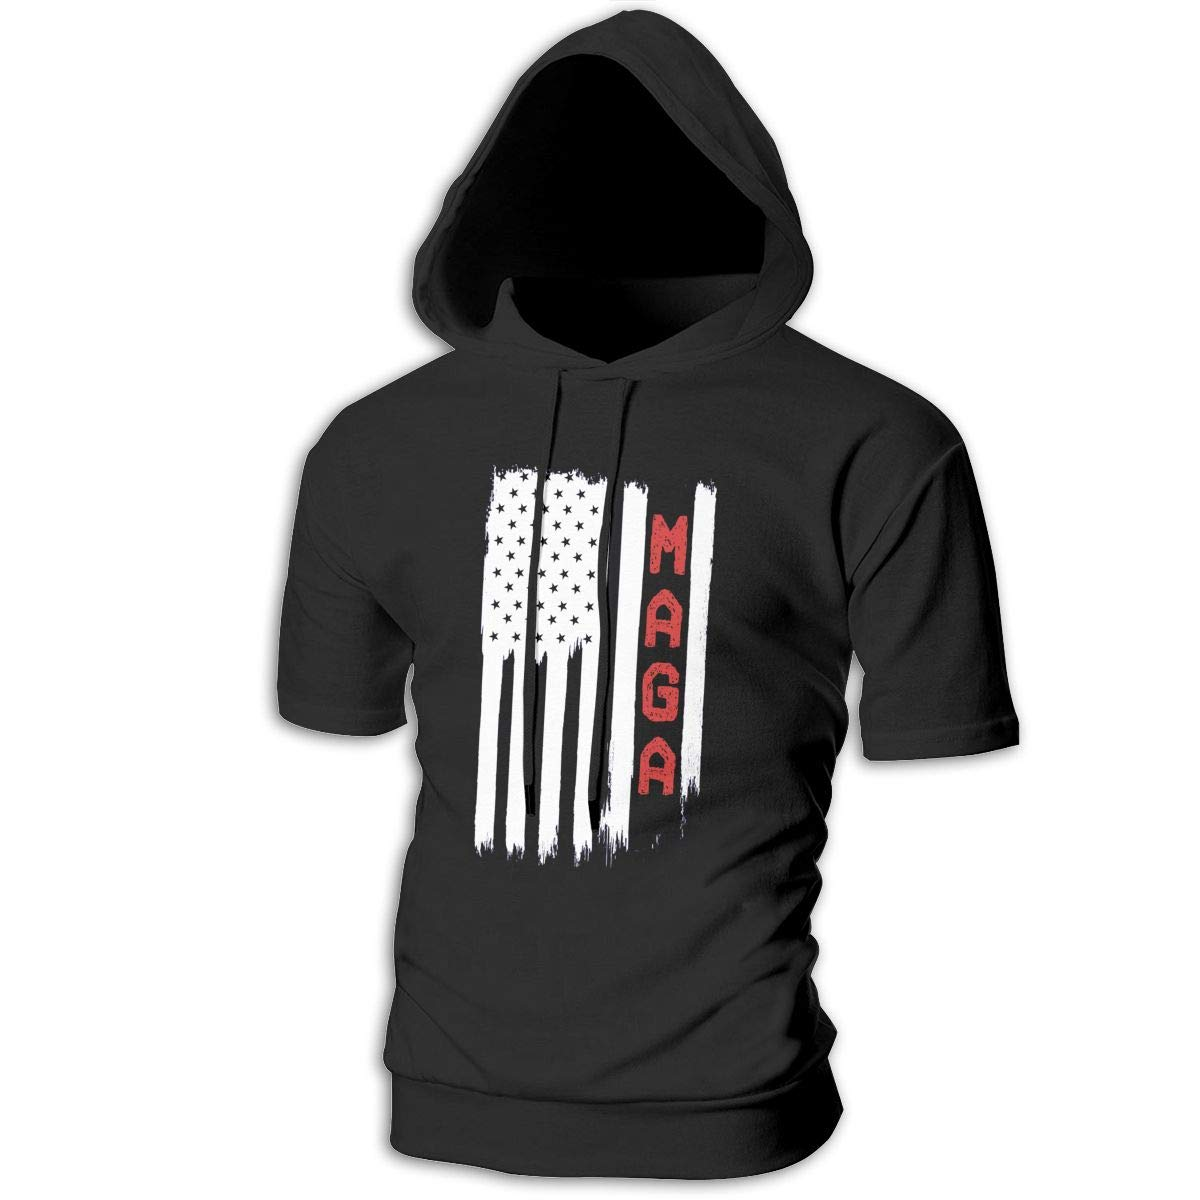 MZ-HY MAGA Mens Cool Short Sleeve Hoodie Pullover Soft Hooded T-Shirt